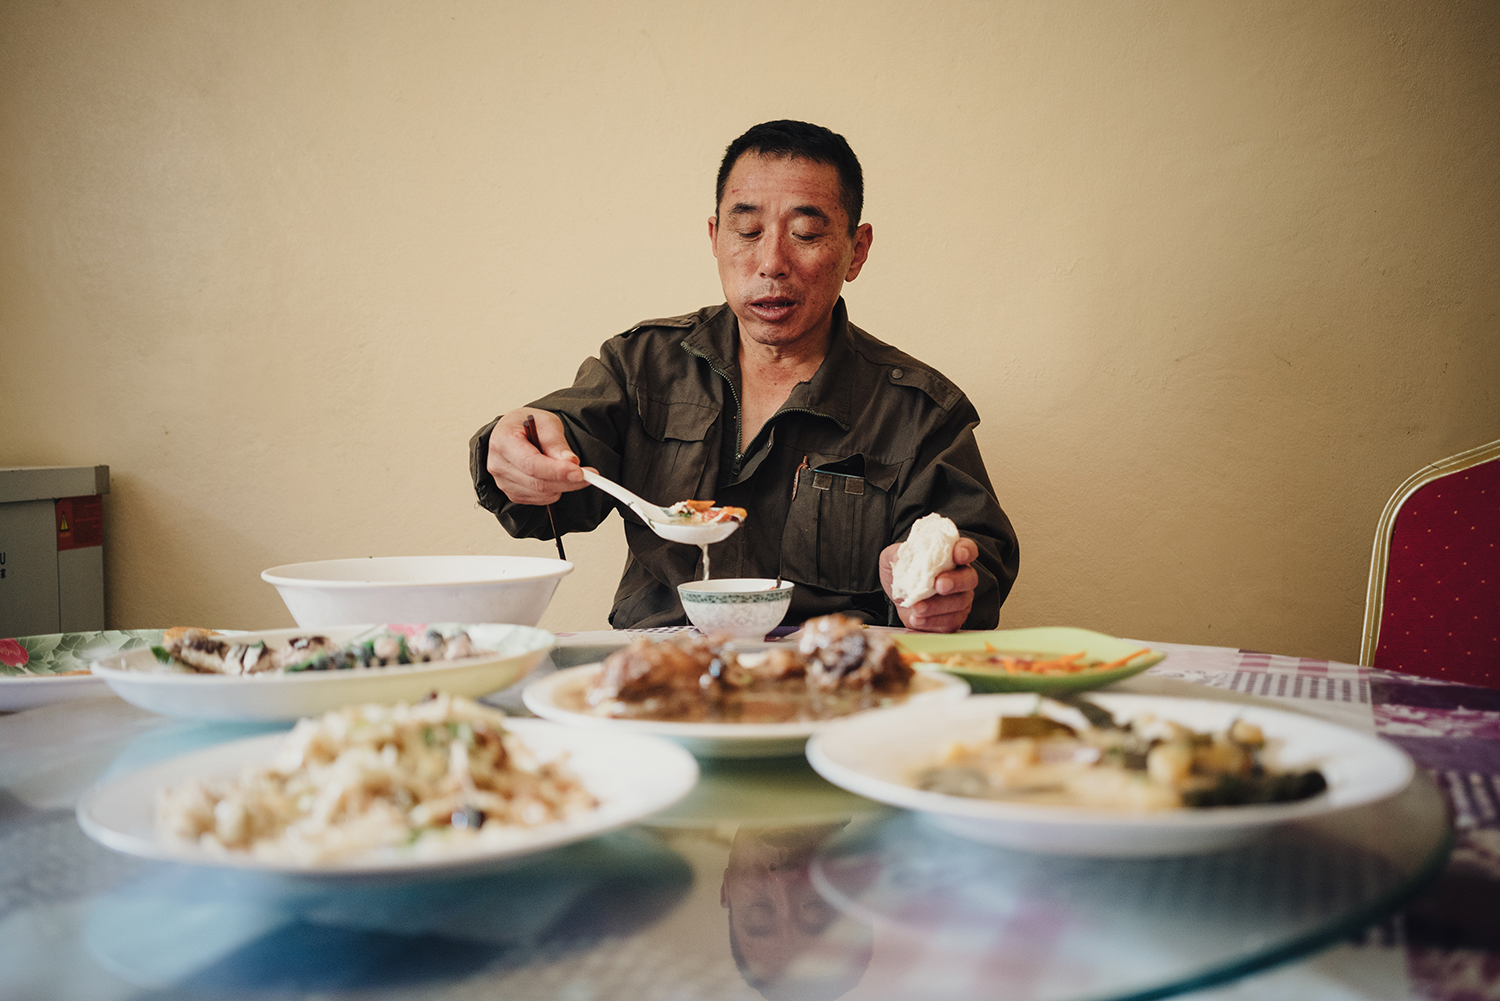 Liu Zhaoquan, 60, the supervisor at Lem Seafood, eats at the factory cafeteria, June 29, 2016. Liu comes from Shandong province. He formerly worked as a carpenter. In 2011, he came to Nouadhibou to help his nephew oversee the fishmeal factory. He goes back to China once every two years. The factory provides Chinese employees Shandong-style dishes, one of the few reminders of home, Liu says.